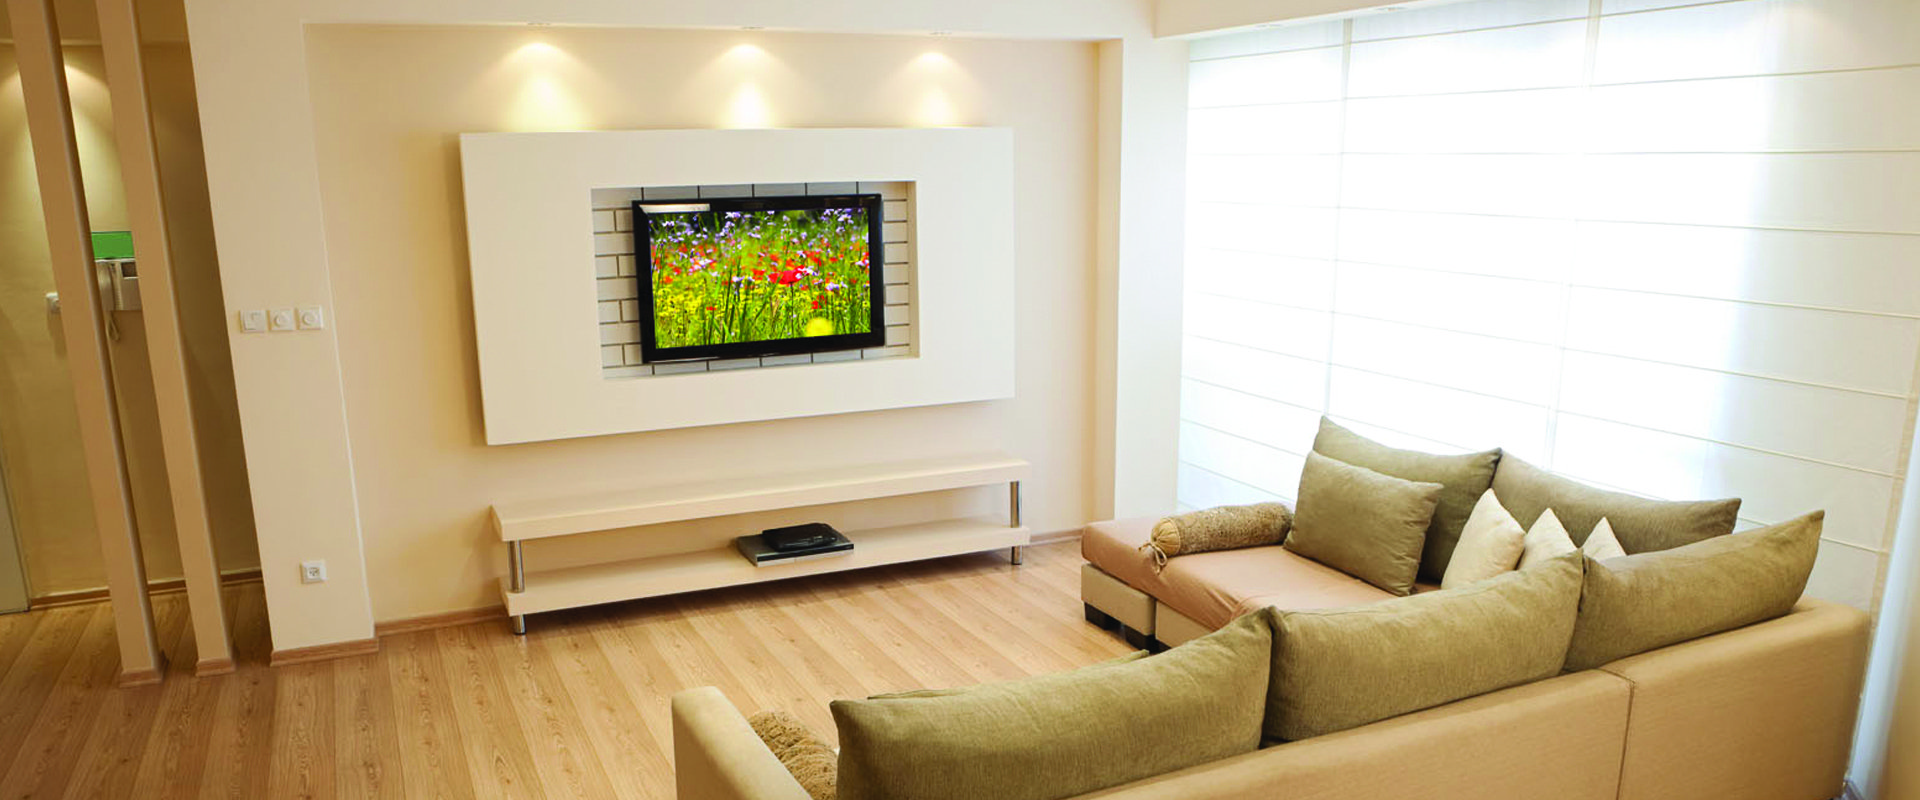 TV in hall